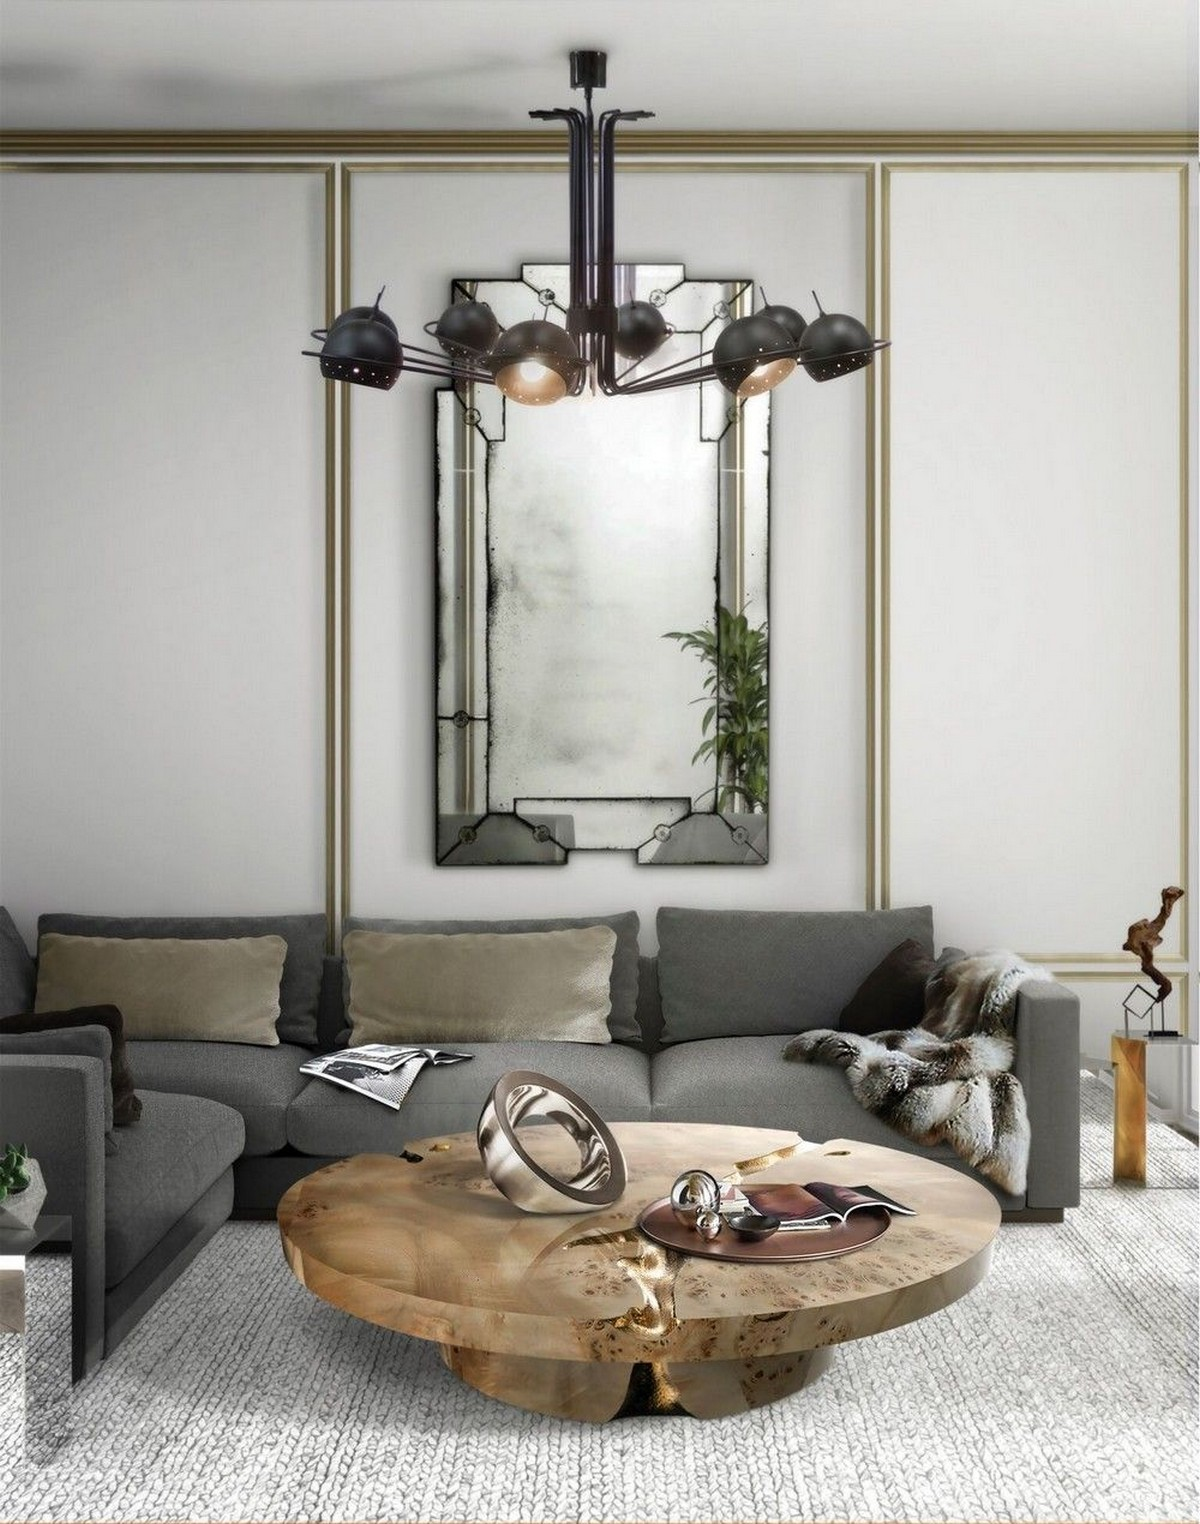 maison et objet 2019 Find The Best Living Room Designs At Maison et Objet 2019 empire2